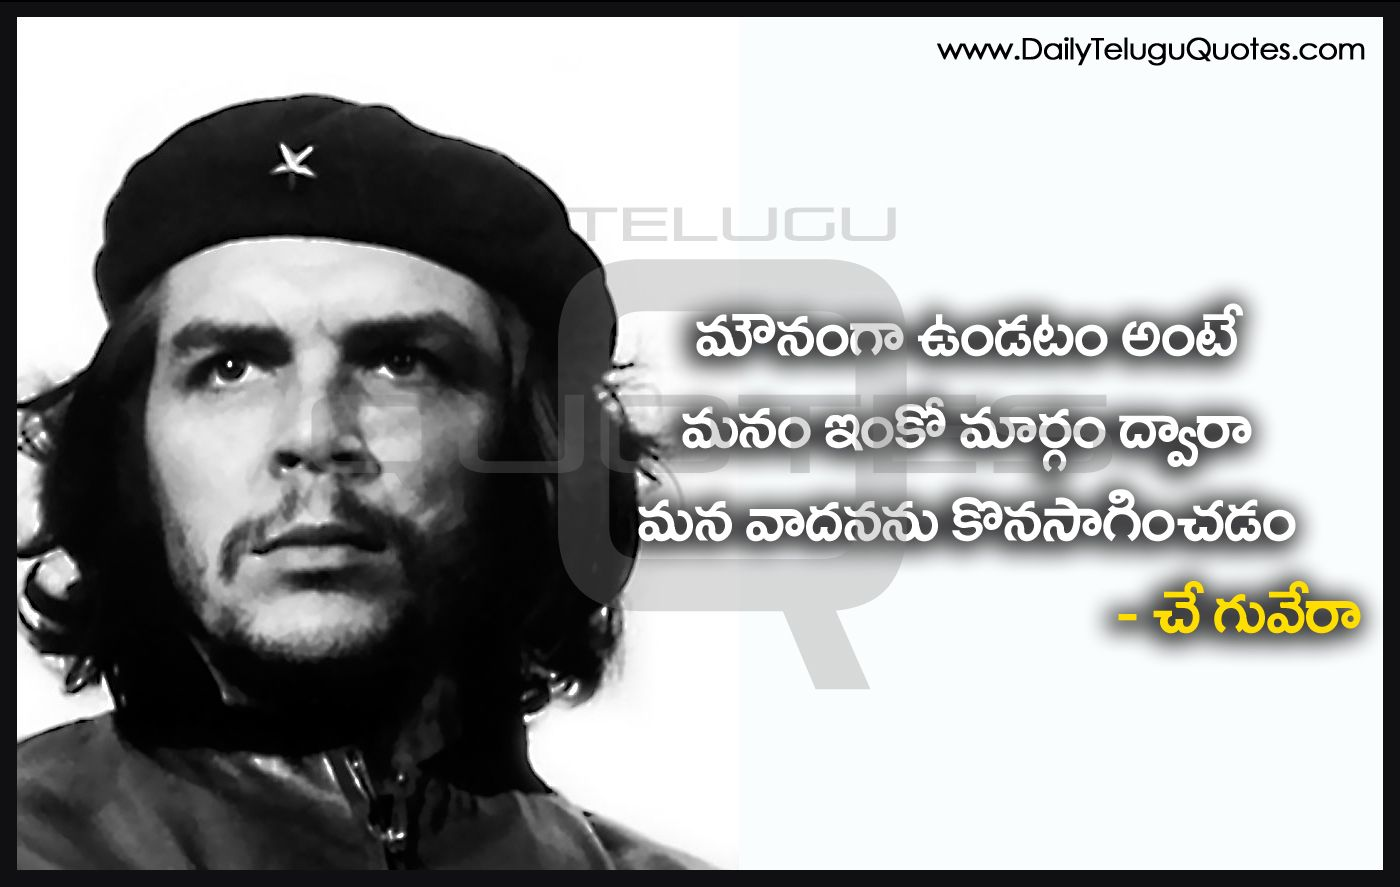 Che+Guevara+Quotes+in+Telugu+HD+Wallpapers+Best+Life .